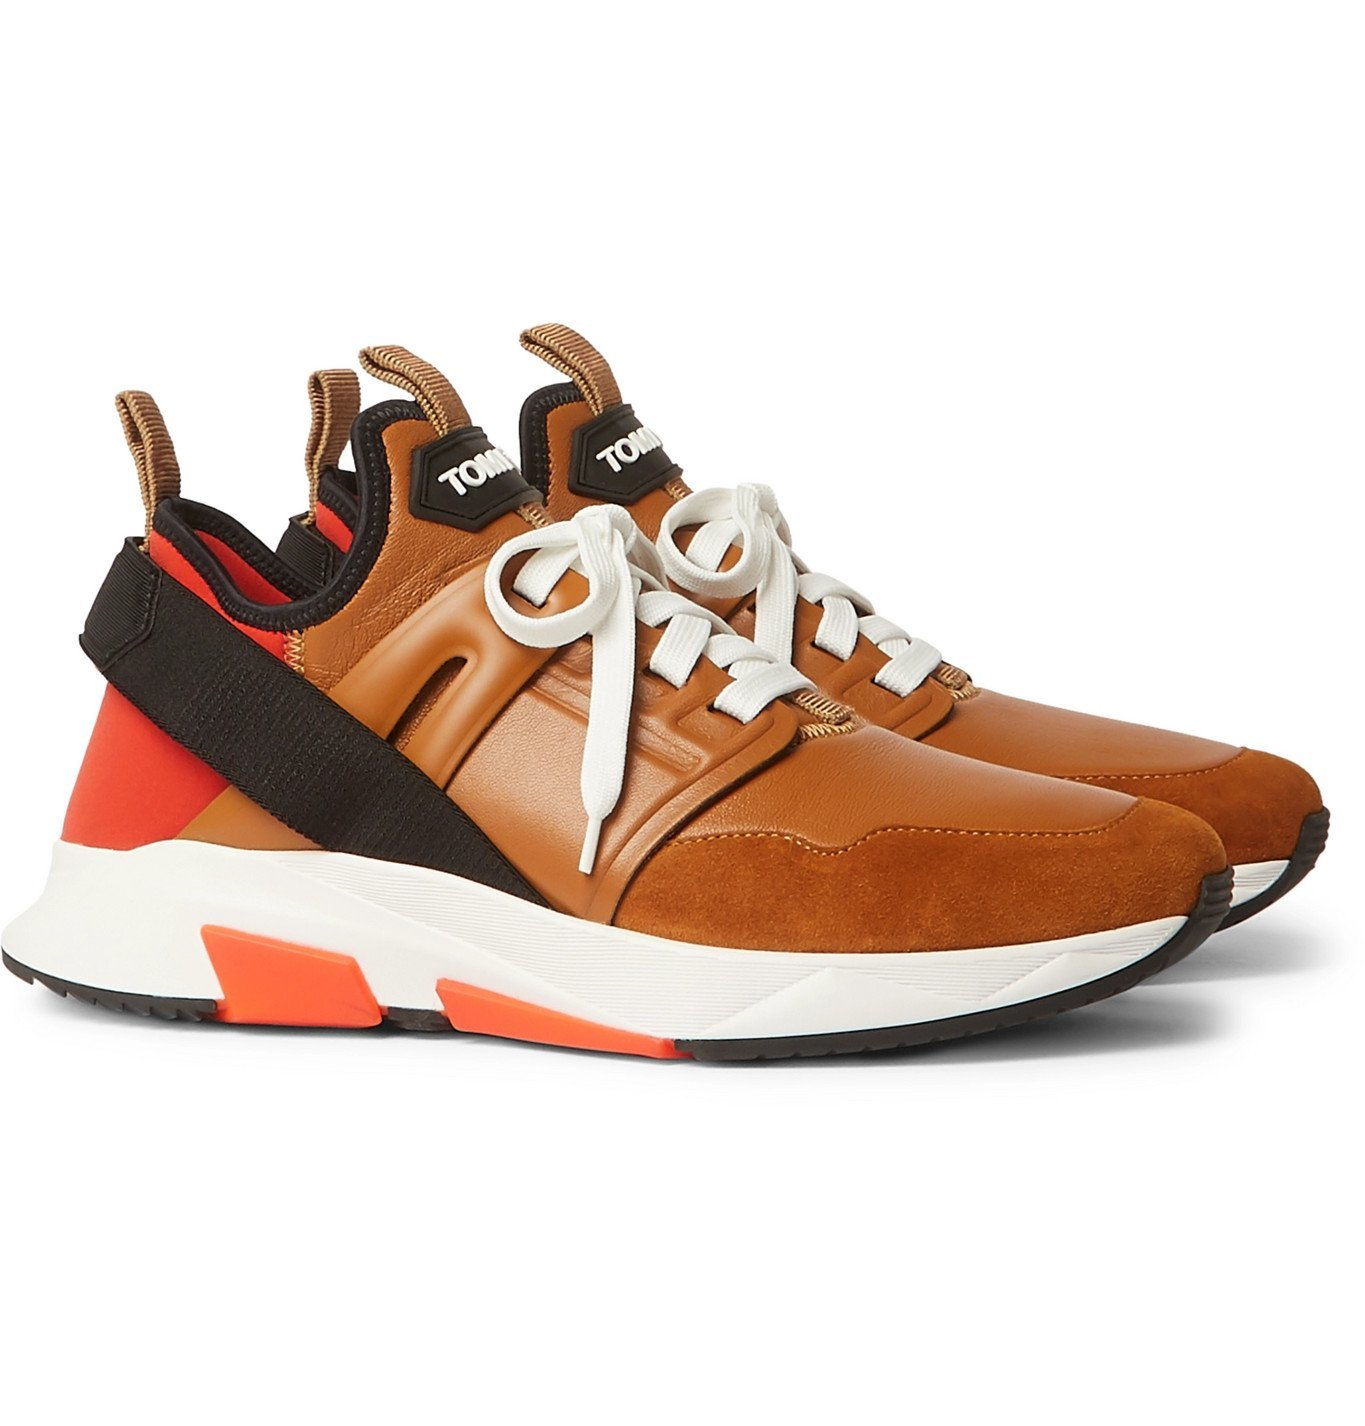 Photo: TOM FORD - Jago Neoprene, Suede and Leather Sneakers - Brown